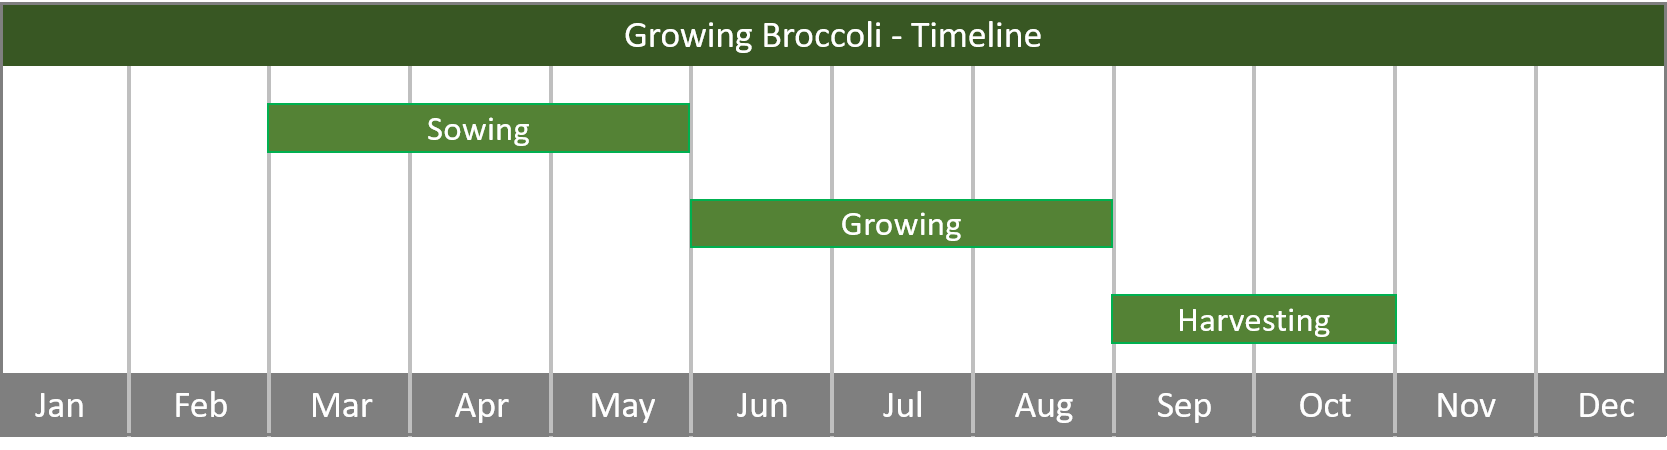 how to grow broccoli from seed to harvest timeline